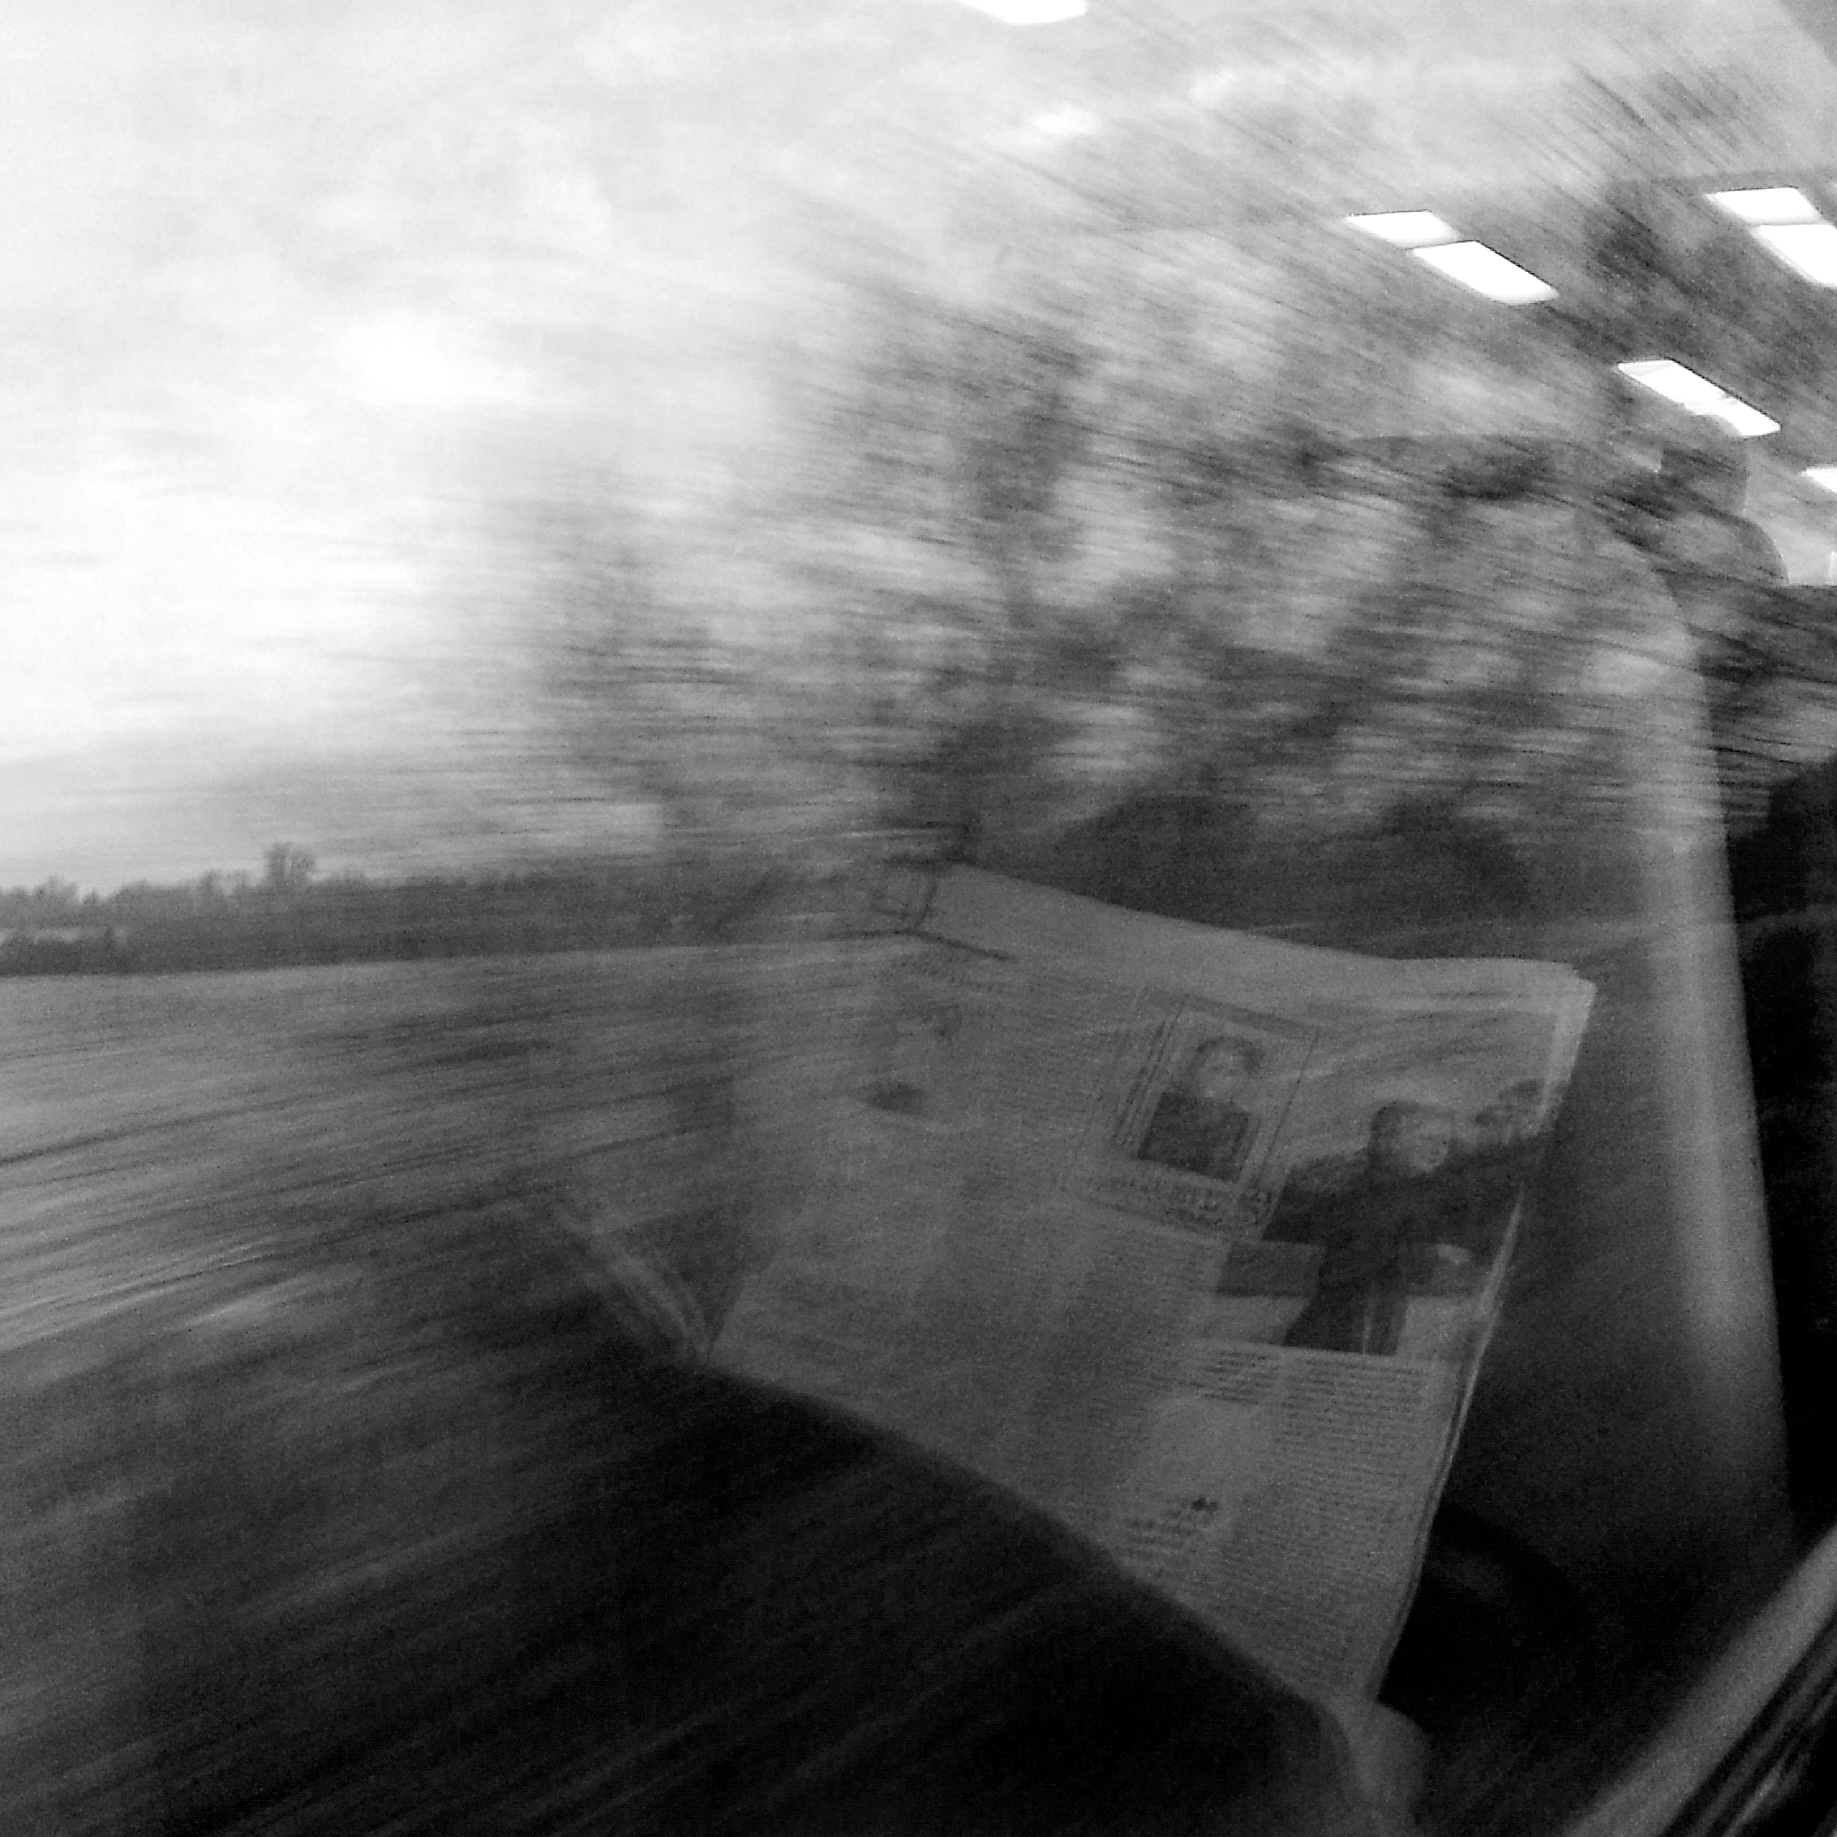 Commute 14 - Morning papers